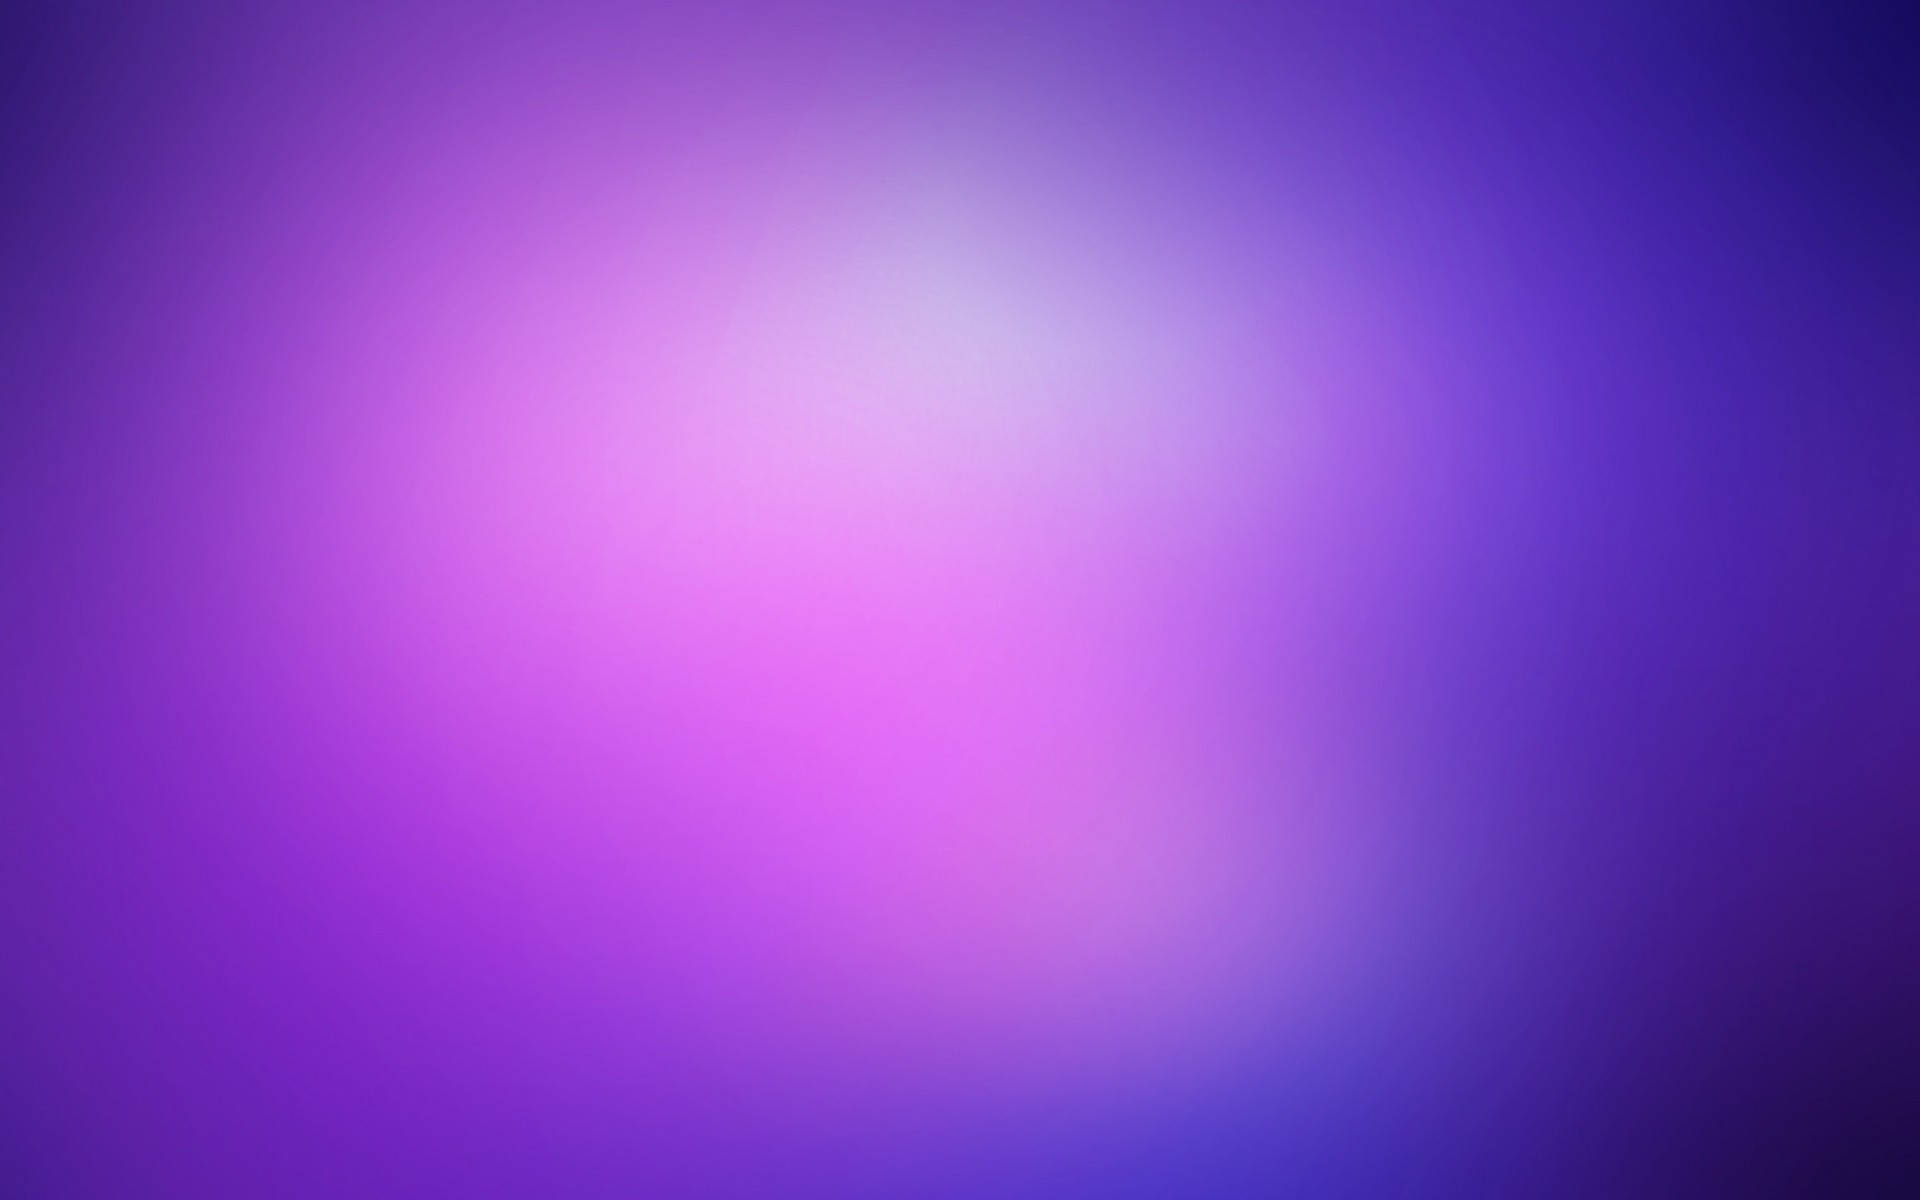 minimalism abstract background light color wallpaper pattern graphic desktop art violet design blur illustration texture spectrum element template bright shape image